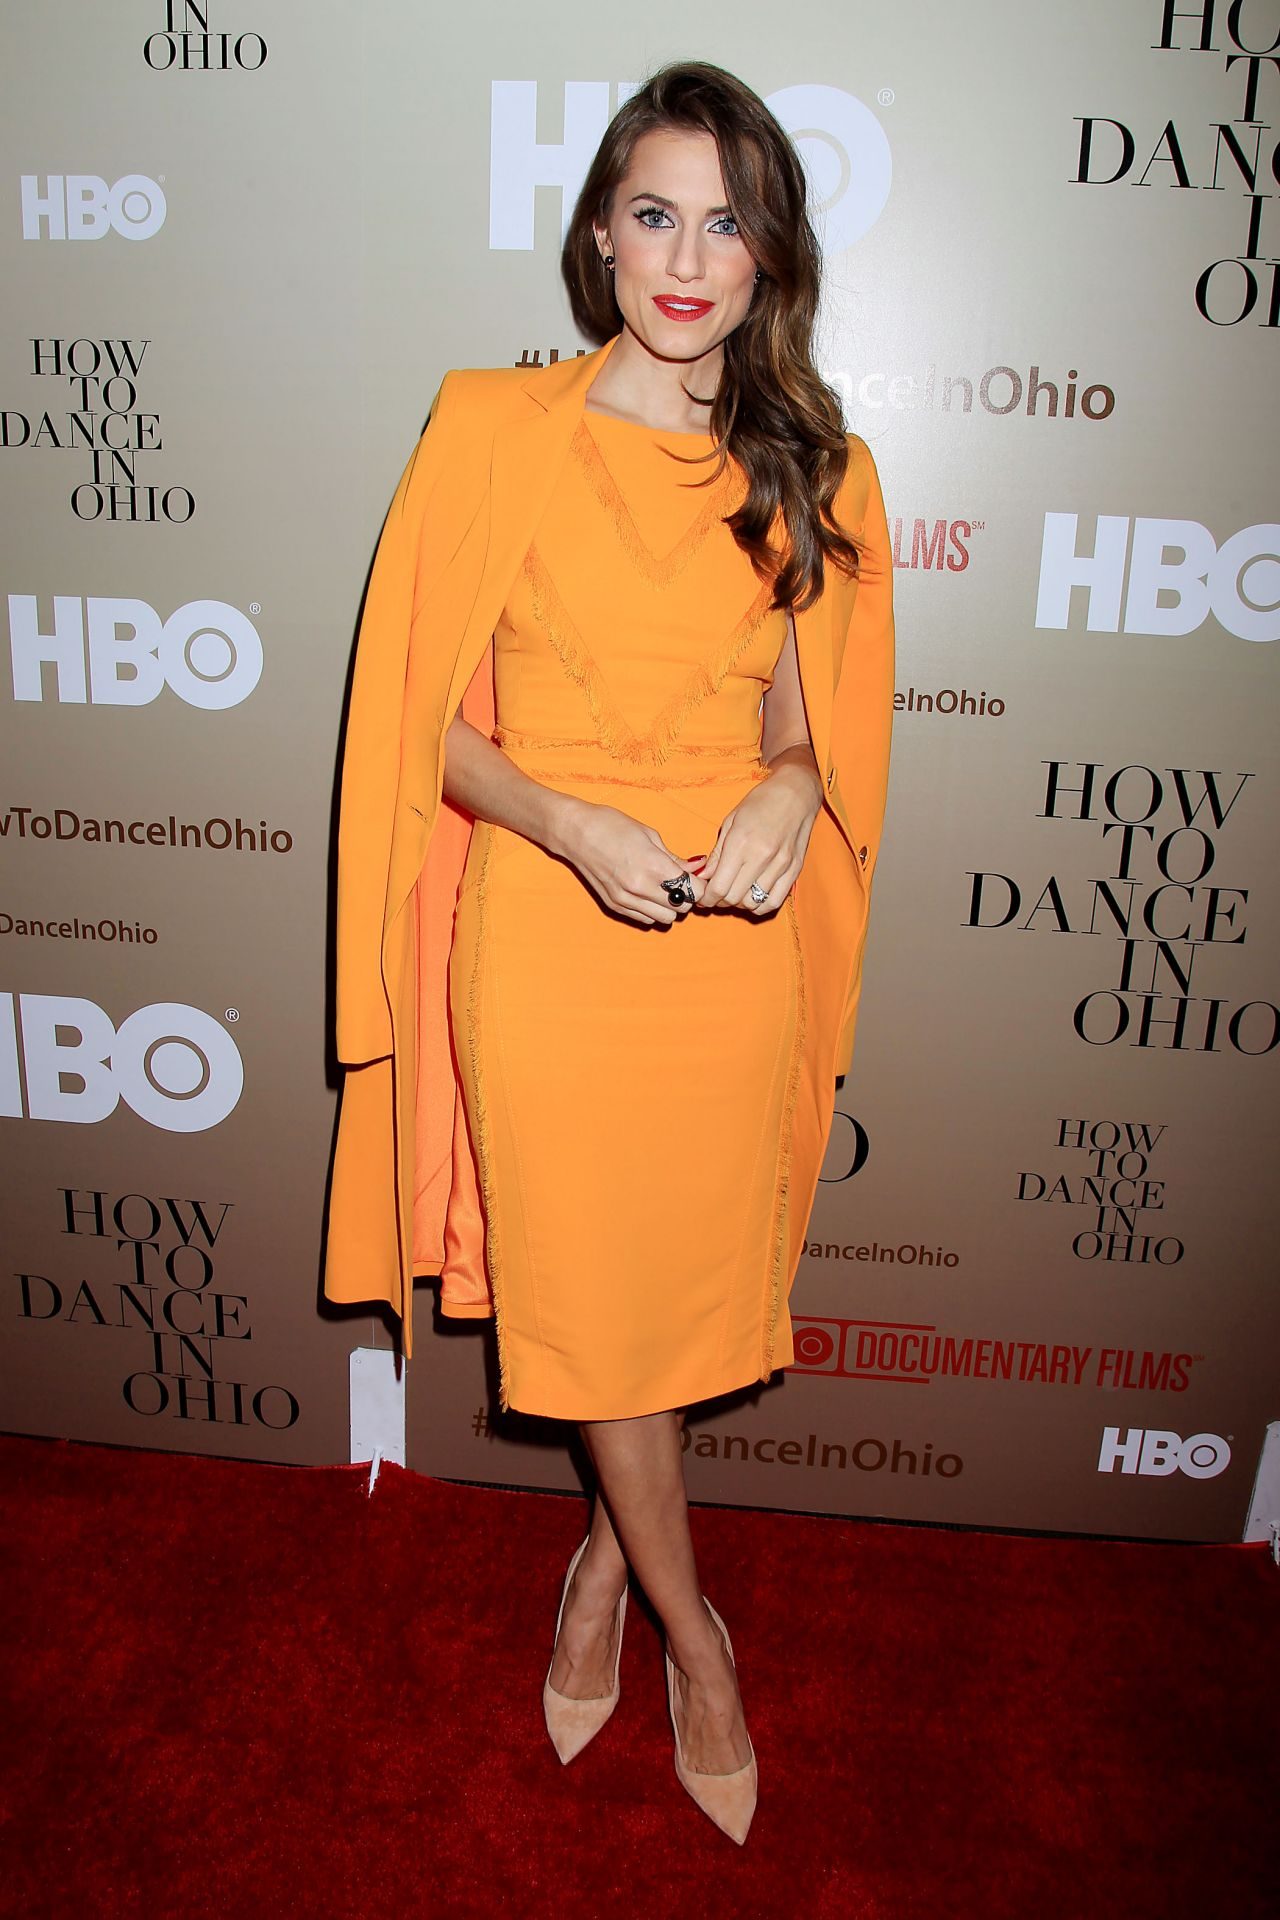 allison-williams-hbo-s-how-to-dance-in-ohio-premiere-in-new-york-city_1